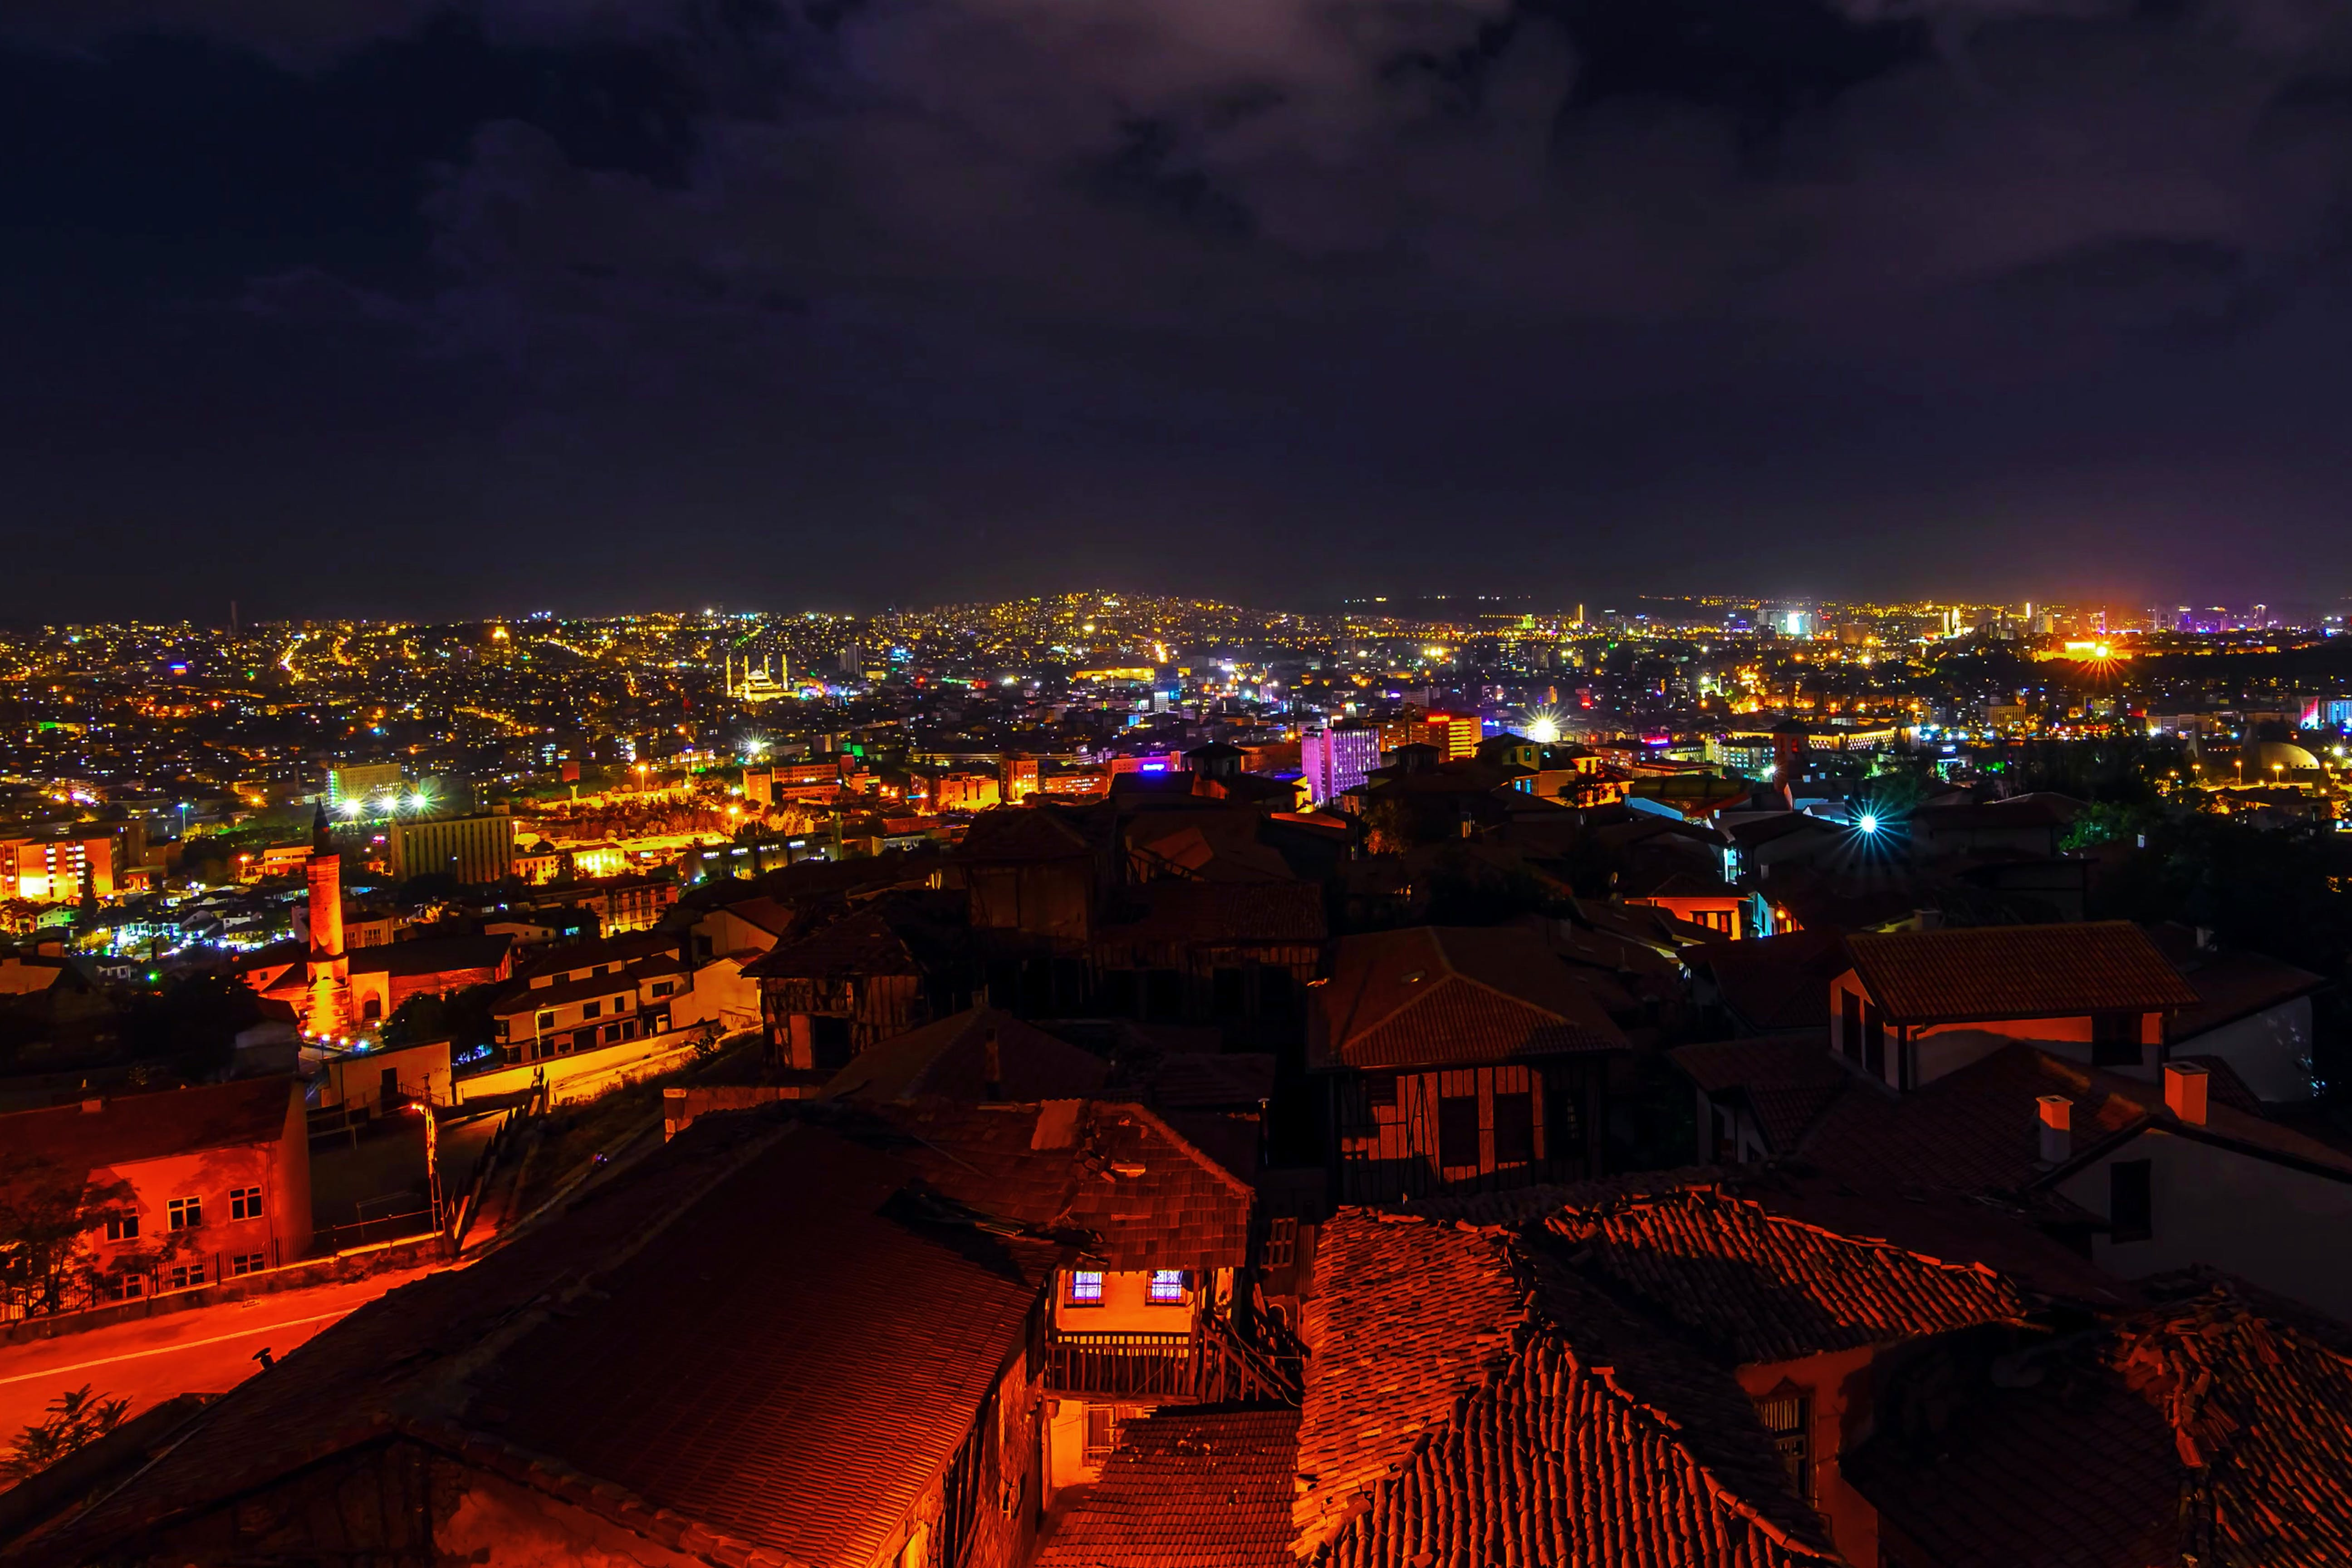 Aerial Photograph Of City During Nighttime